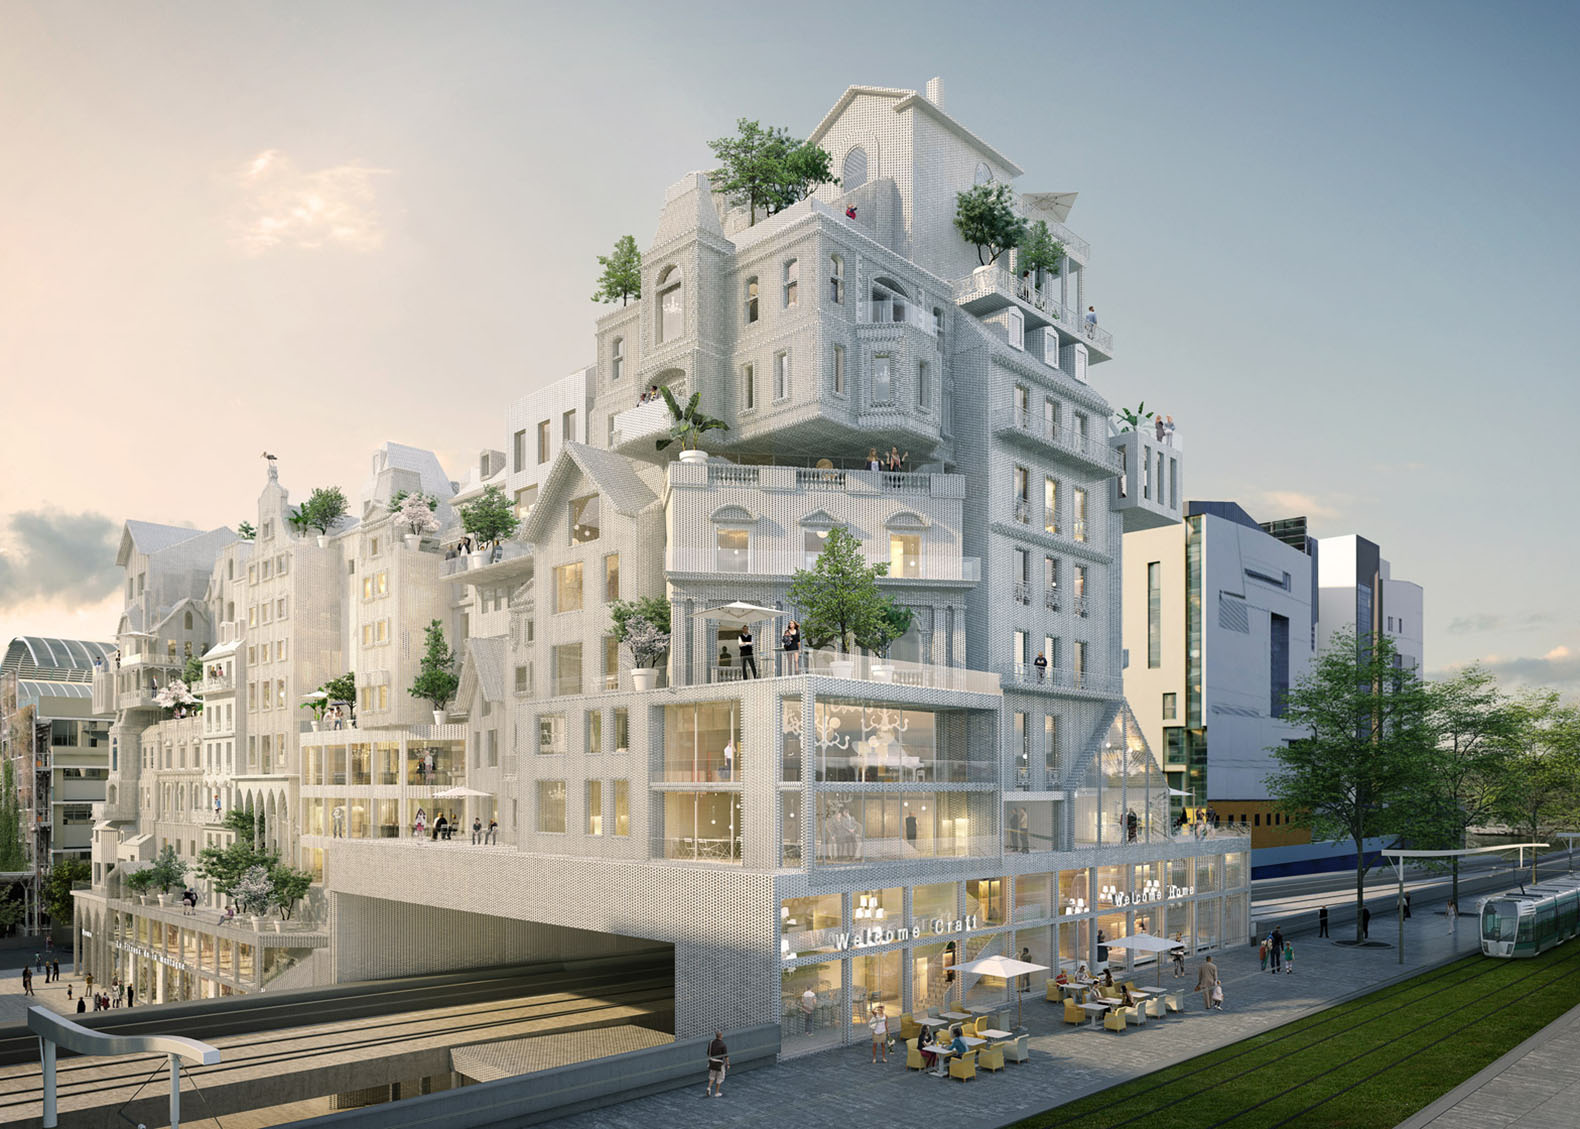 Périphériques' affordable housing proposal reinvents Paris ...